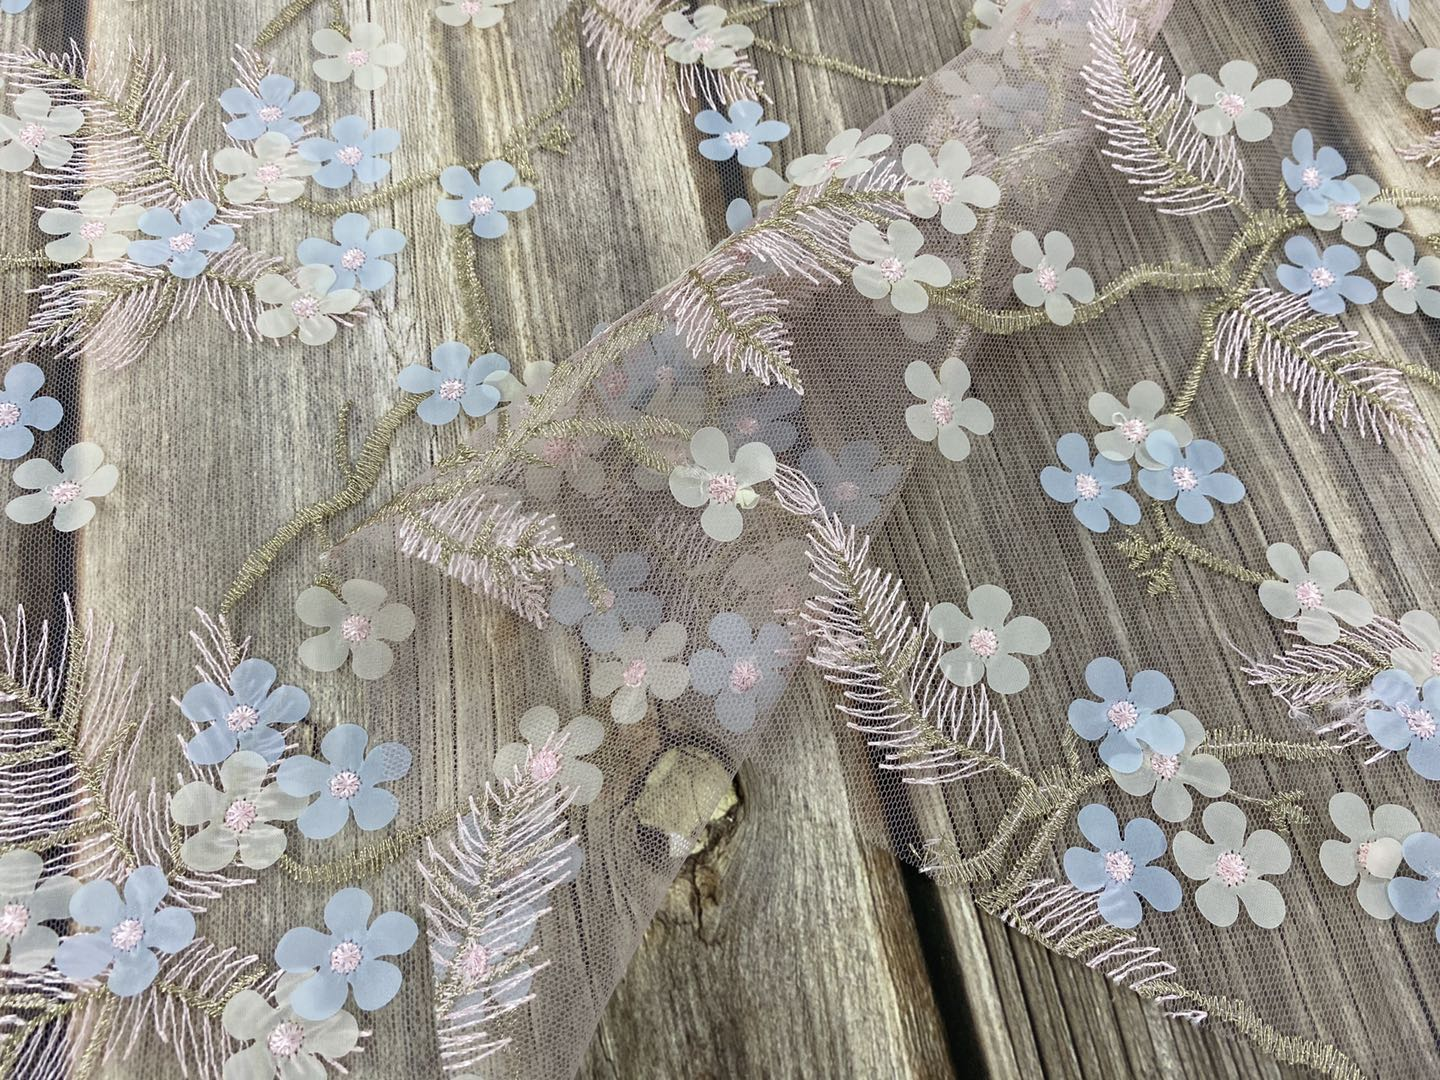 Poly Mesh Chiffon Embroidery Fabric